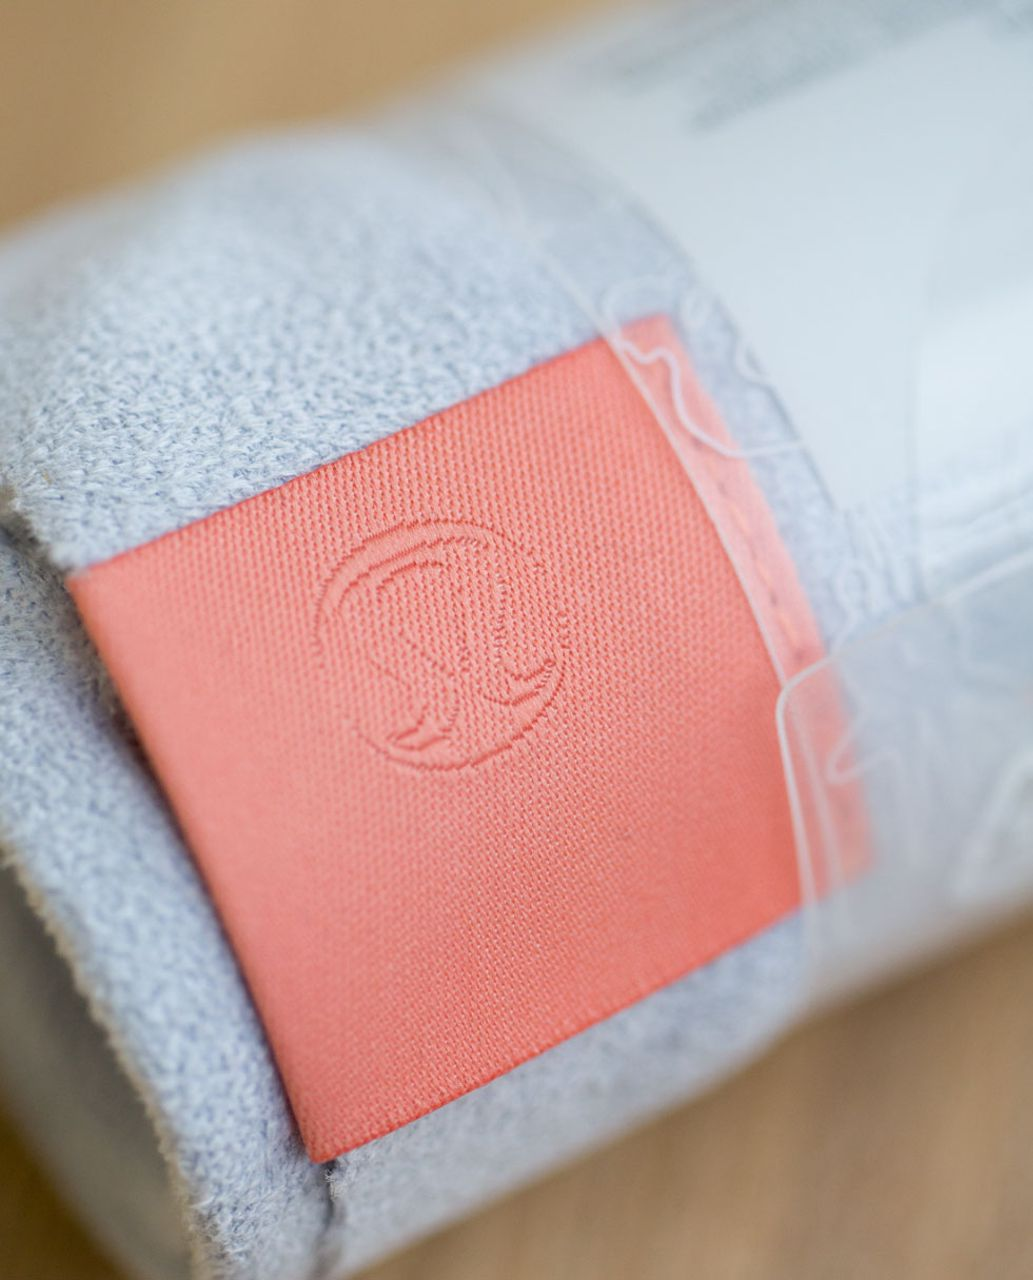 Lululemon The (Small) Towel - Early Blue